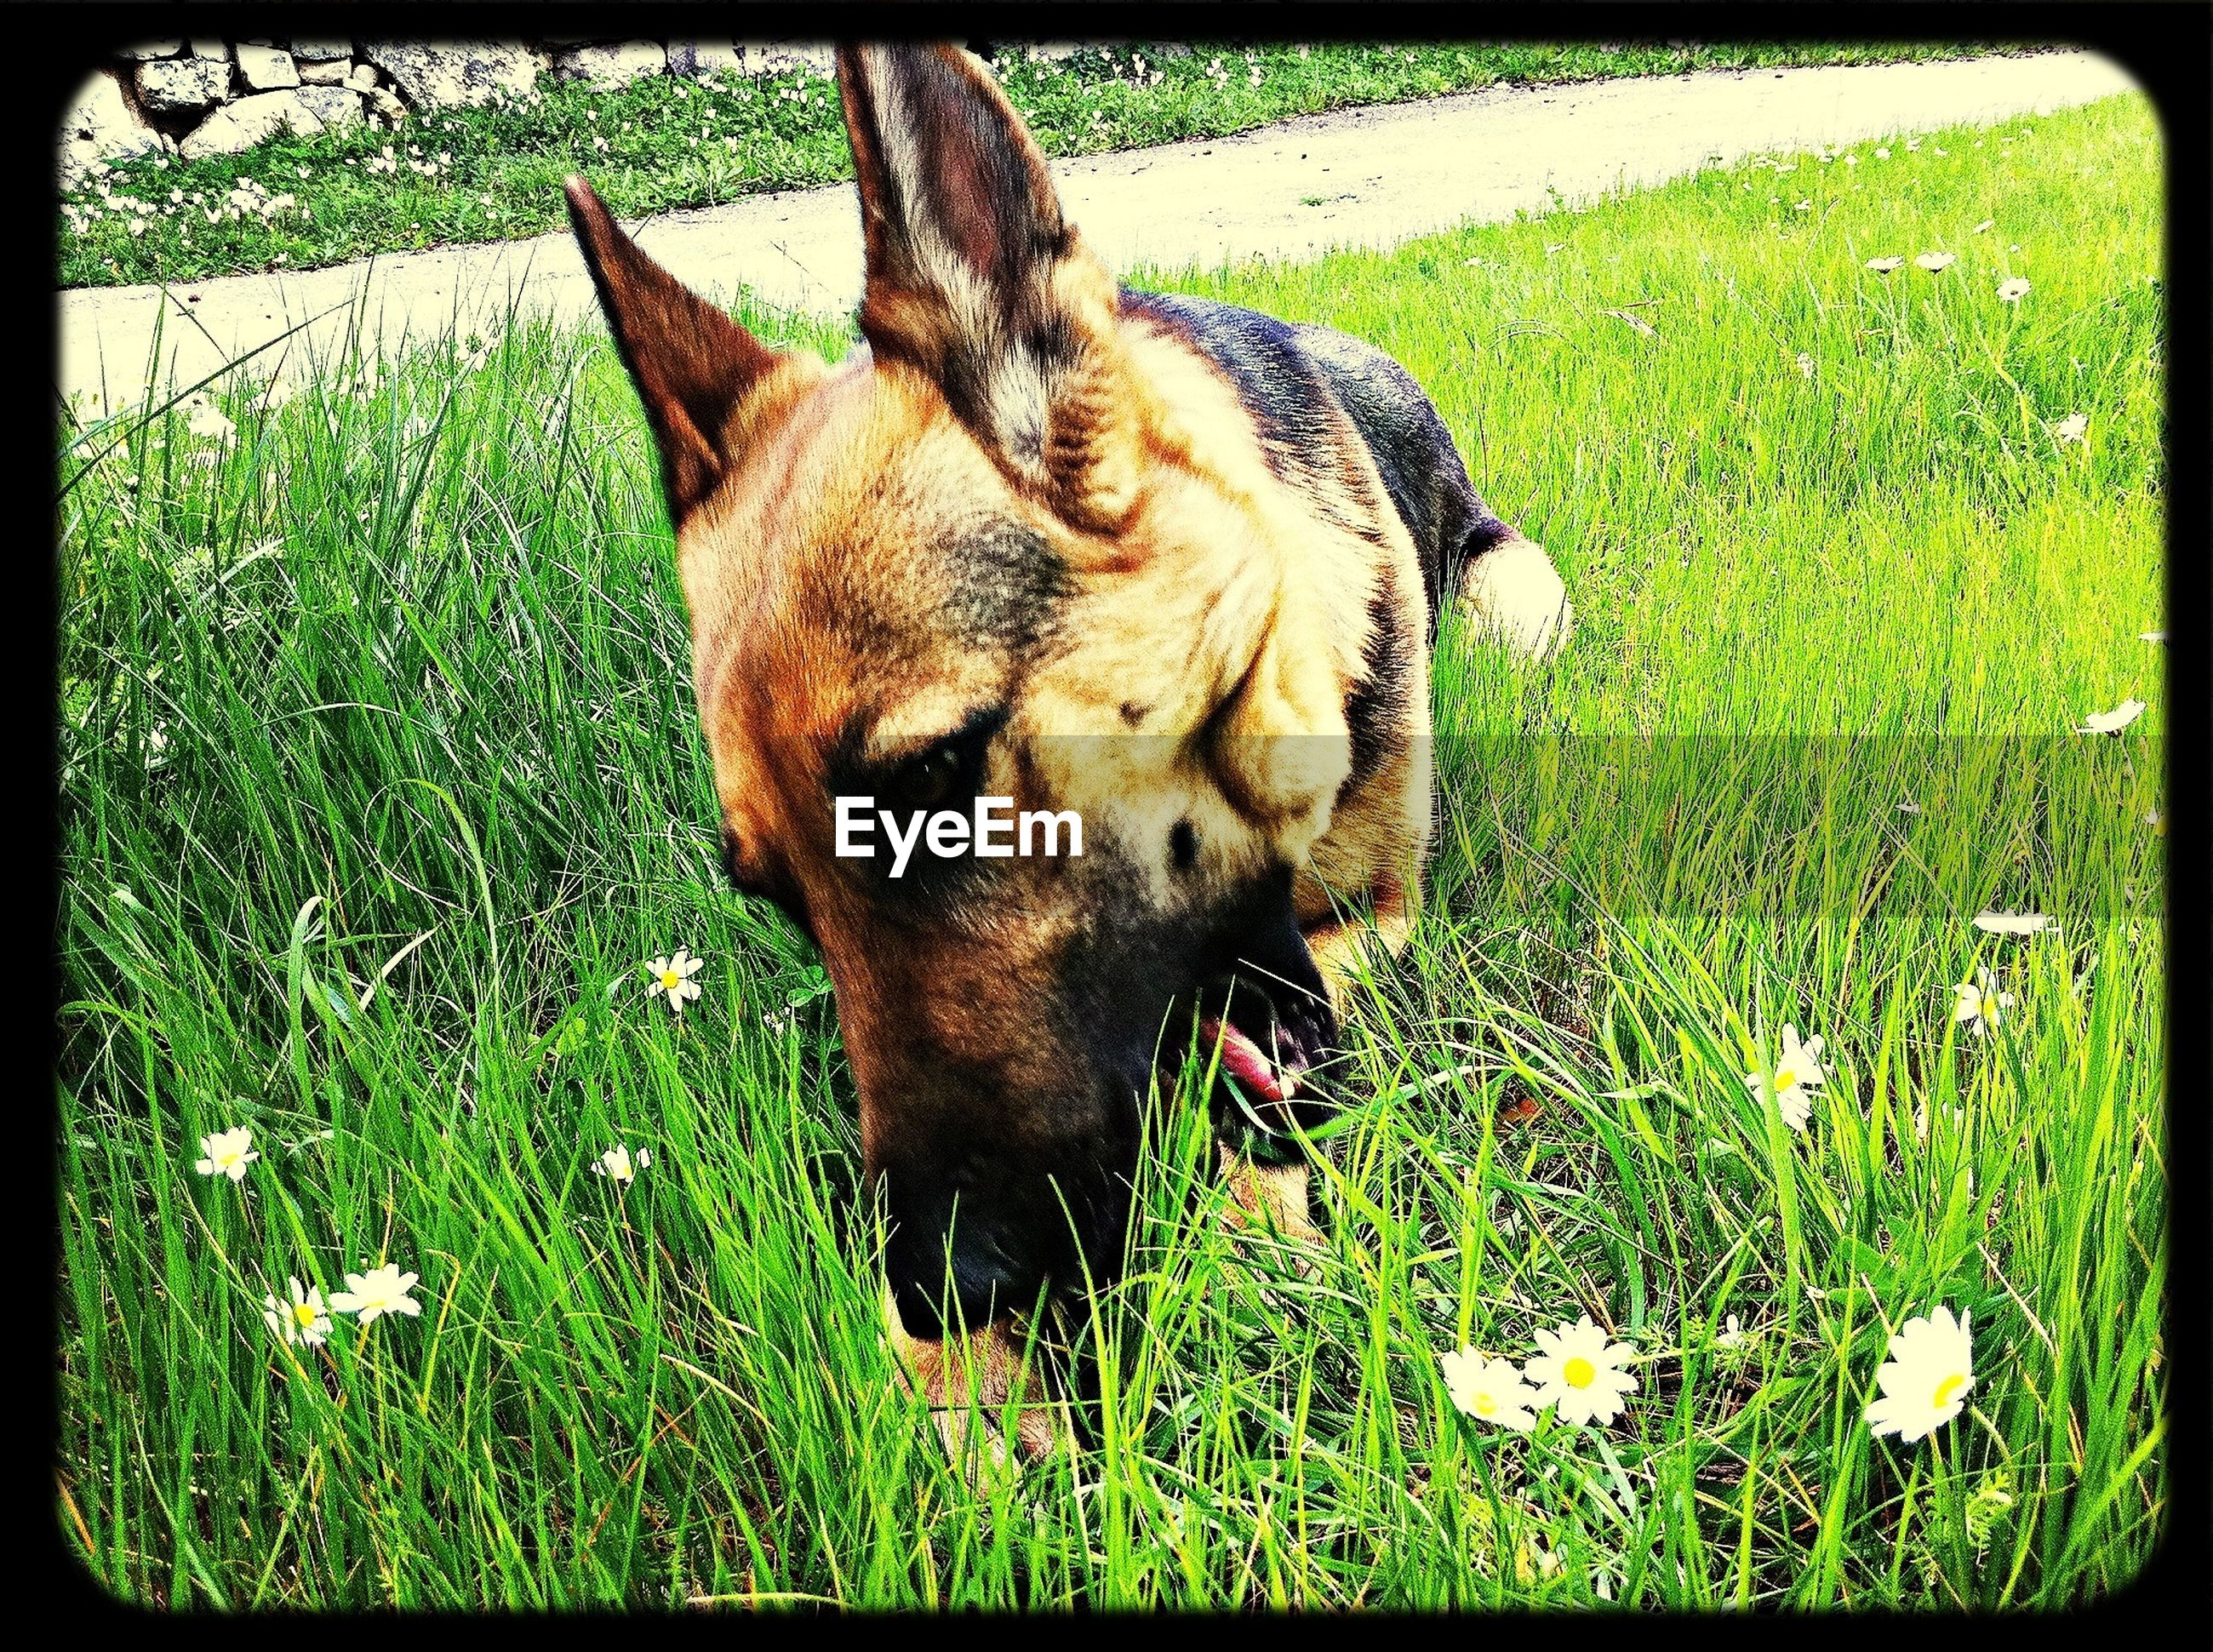 animal themes, one animal, domestic animals, mammal, transfer print, grass, pets, field, auto post production filter, dog, grassy, standing, sunlight, no people, zoology, day, outdoors, full length, animal head, brown